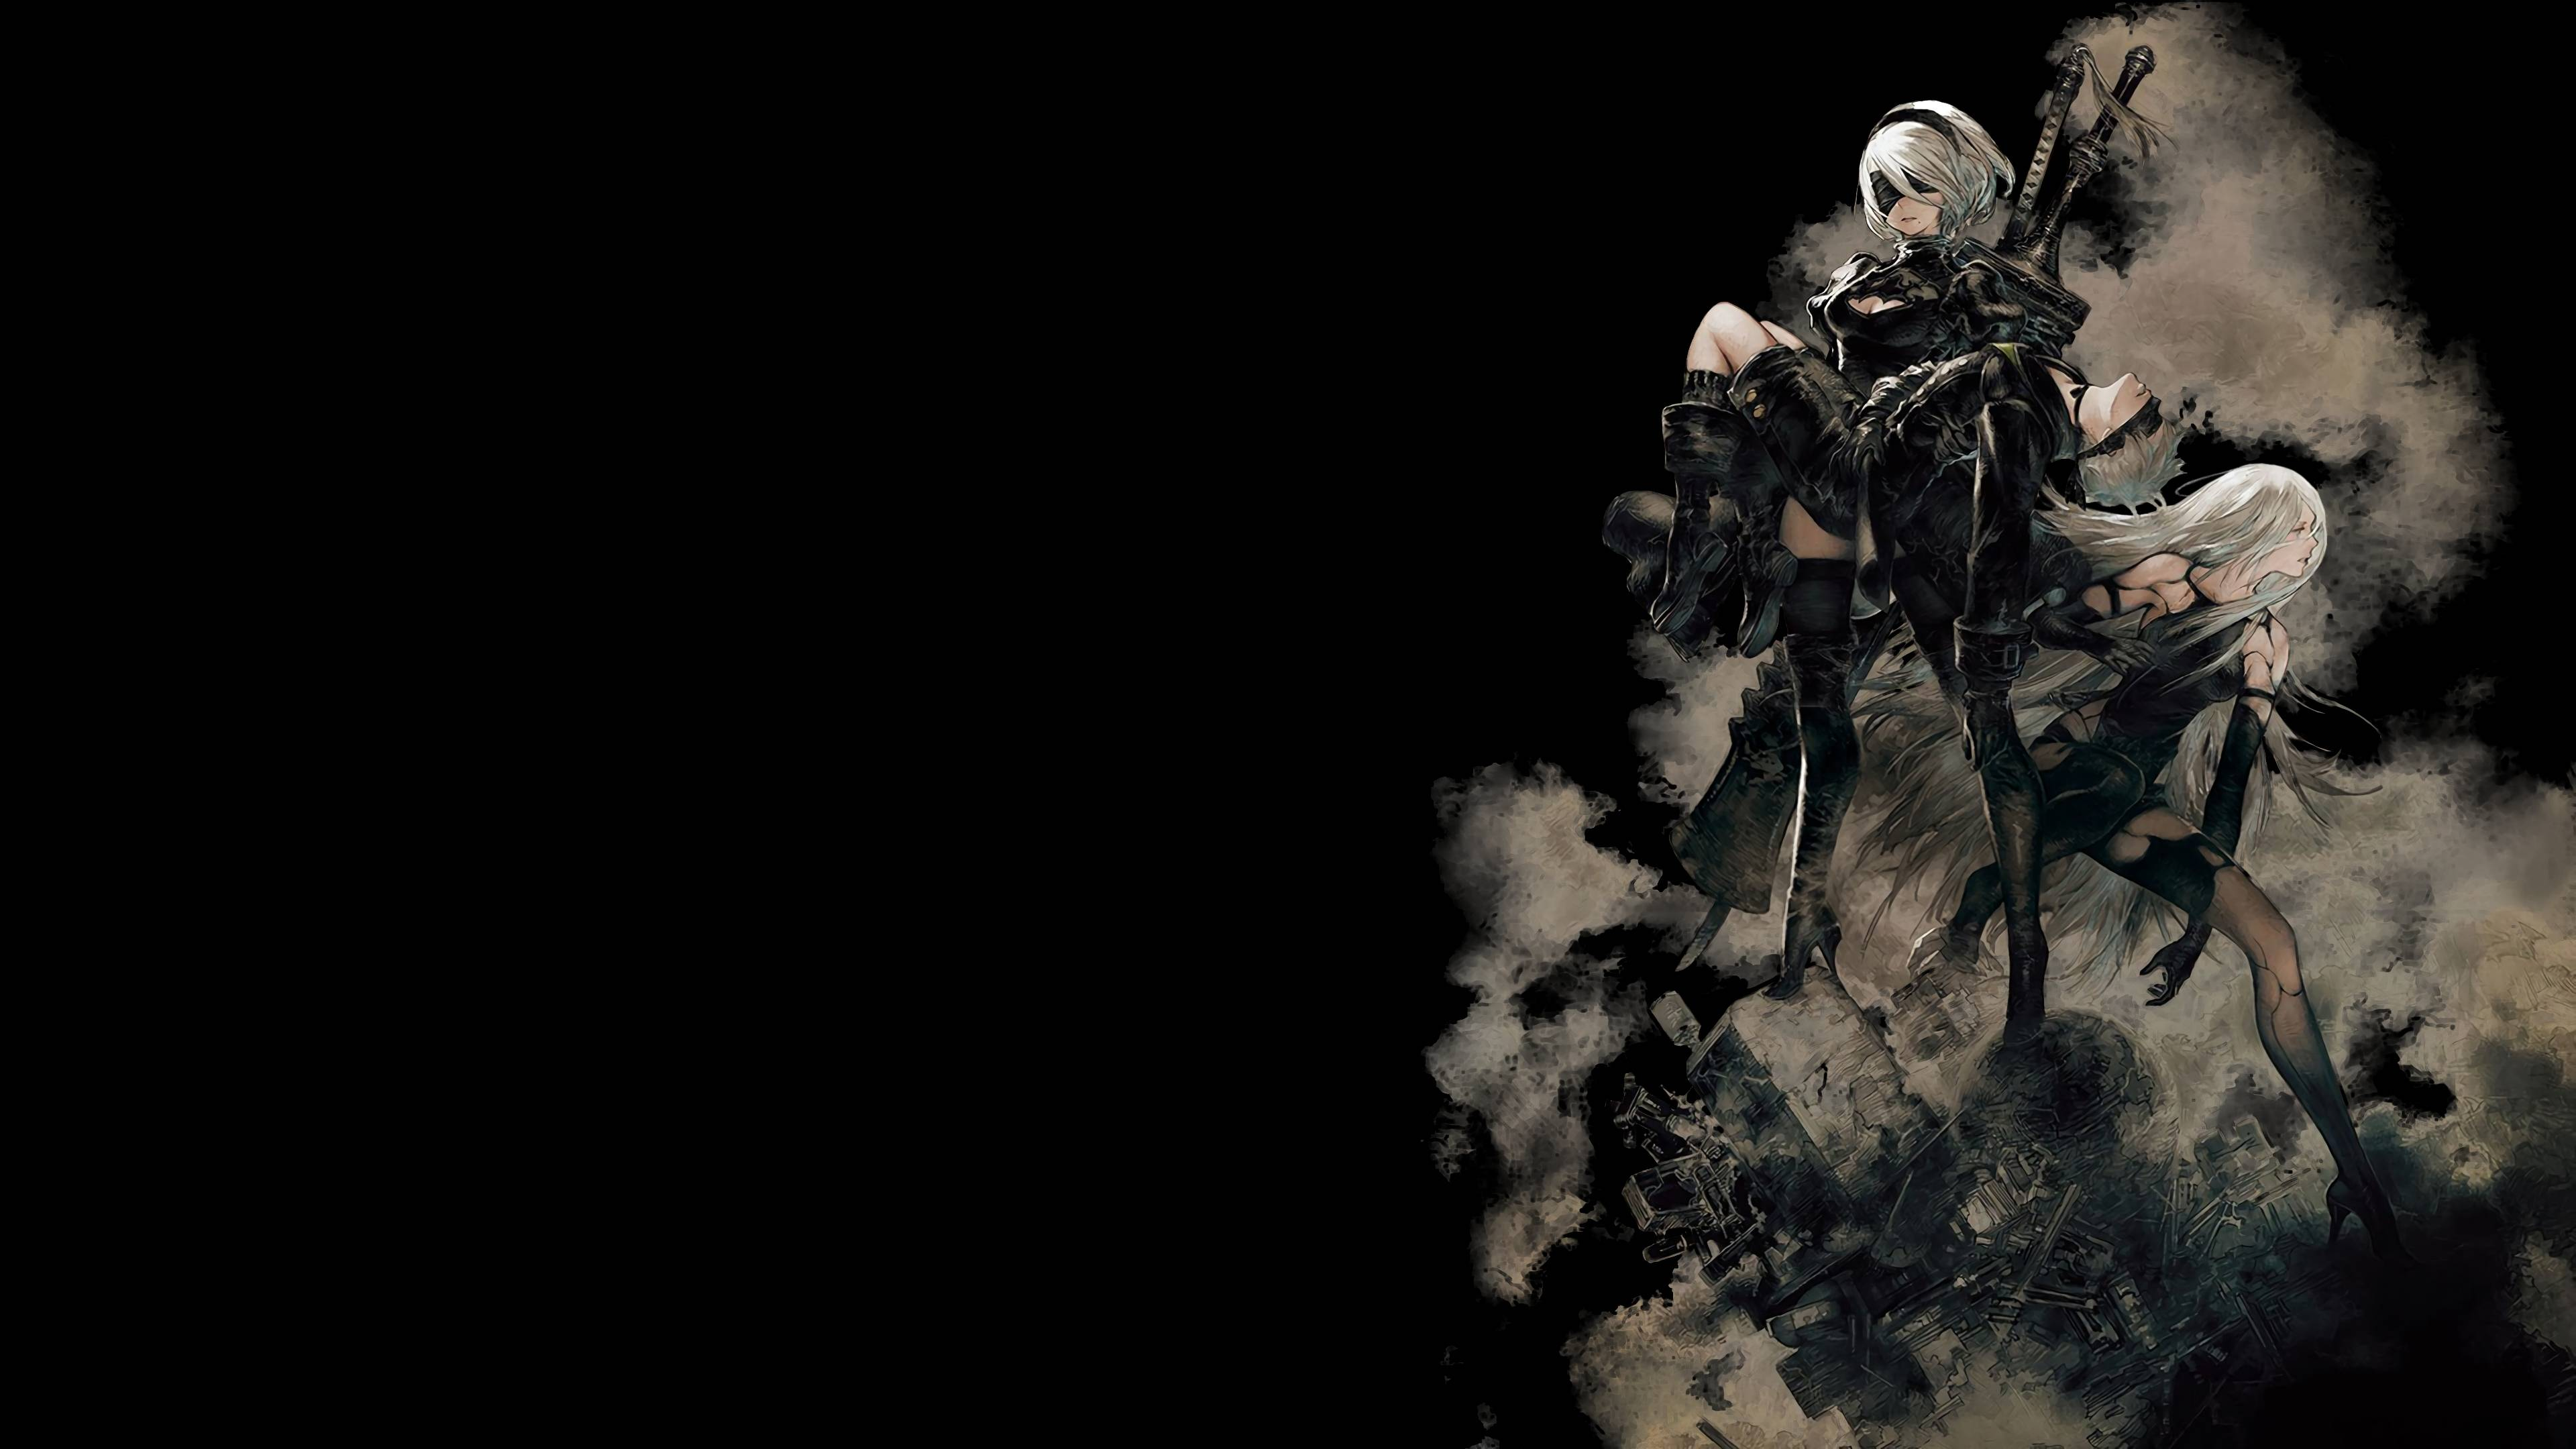 Nier Automata 1440p Wallpaper Posted By Samantha Cunningham